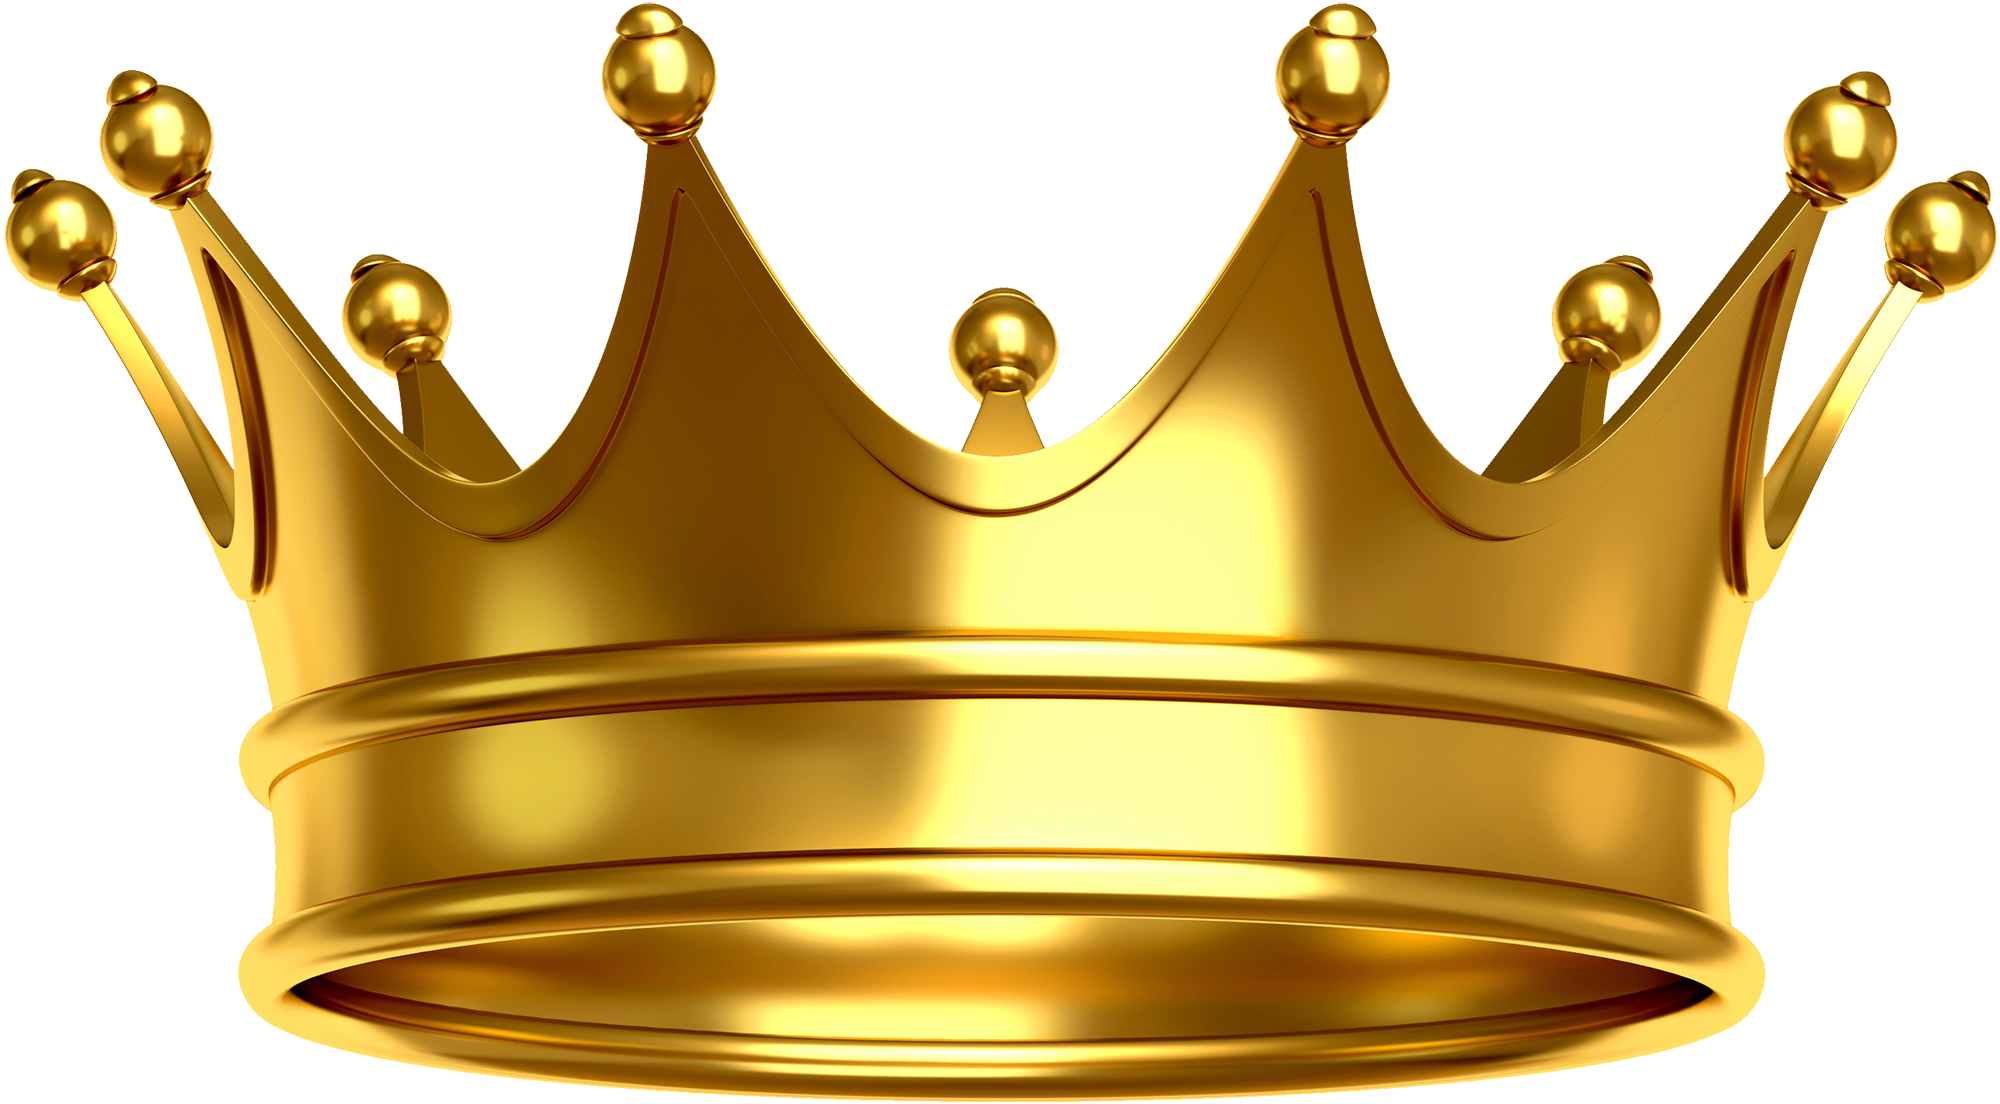 Gold King Crown Png - Crown PNG, King Crown, Princess Crown.PNG Images And Icons - Free ...